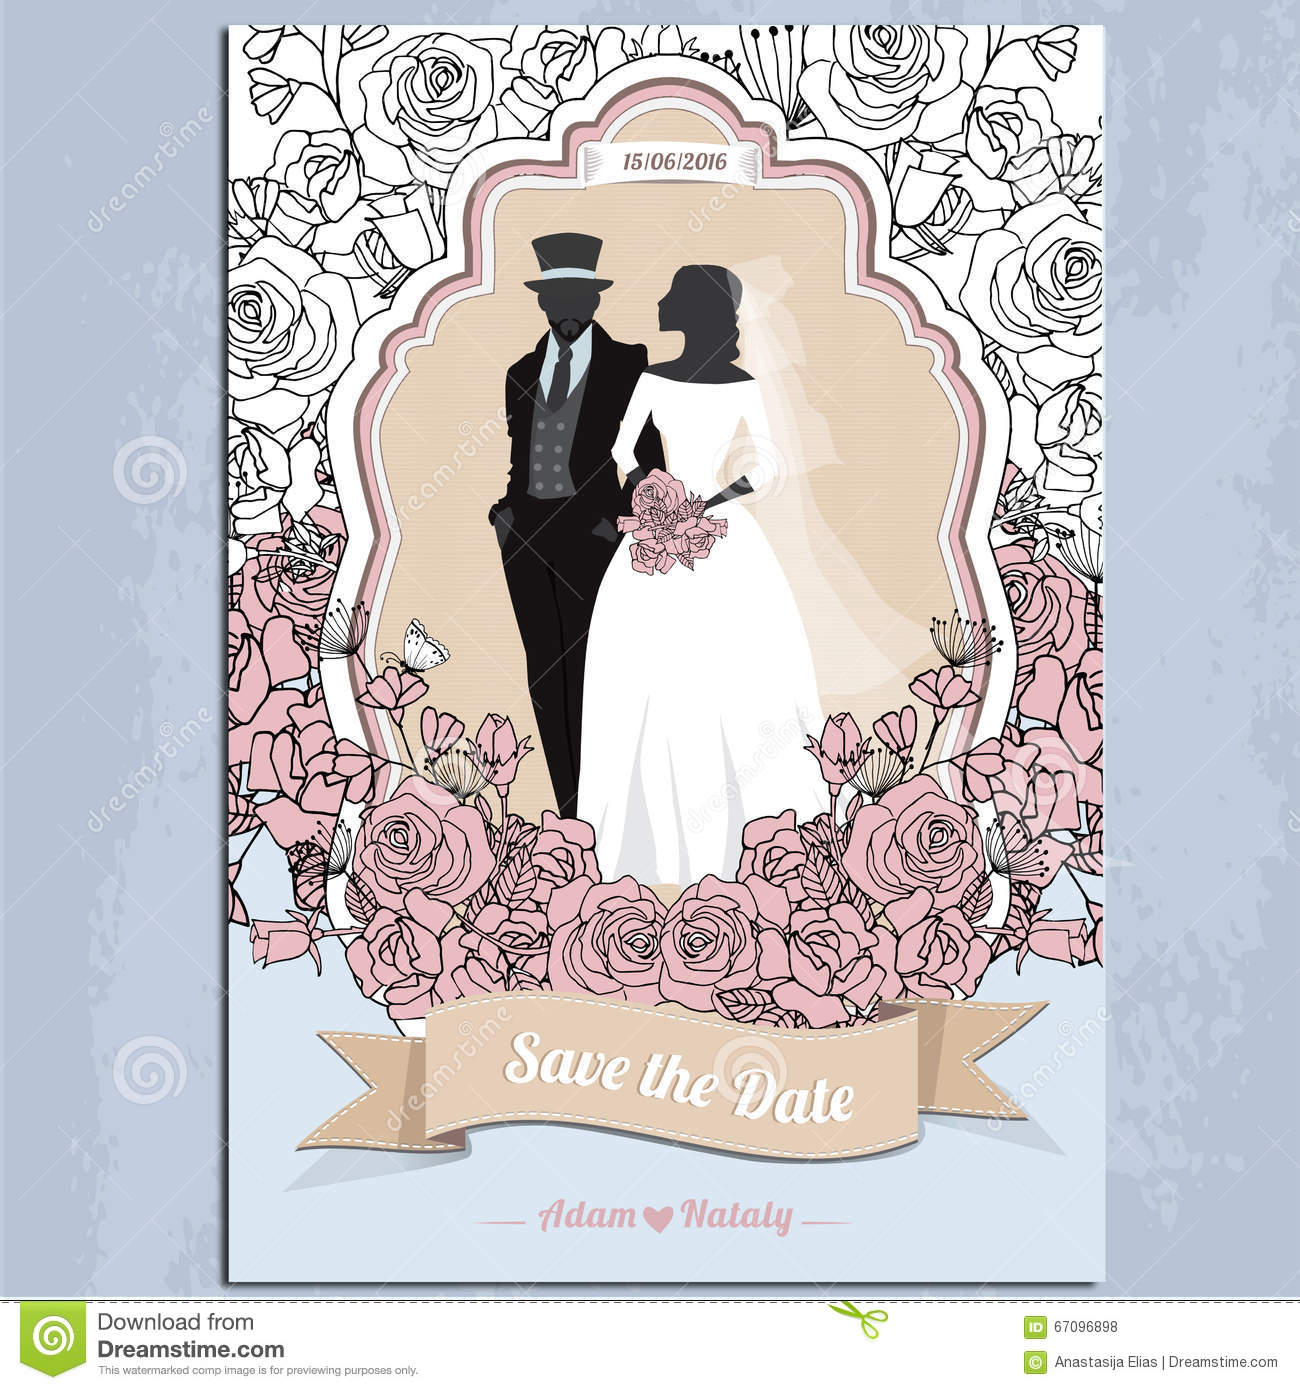 Wedding Invitation Card Vintage Design Silhouette Dividers Ceremony